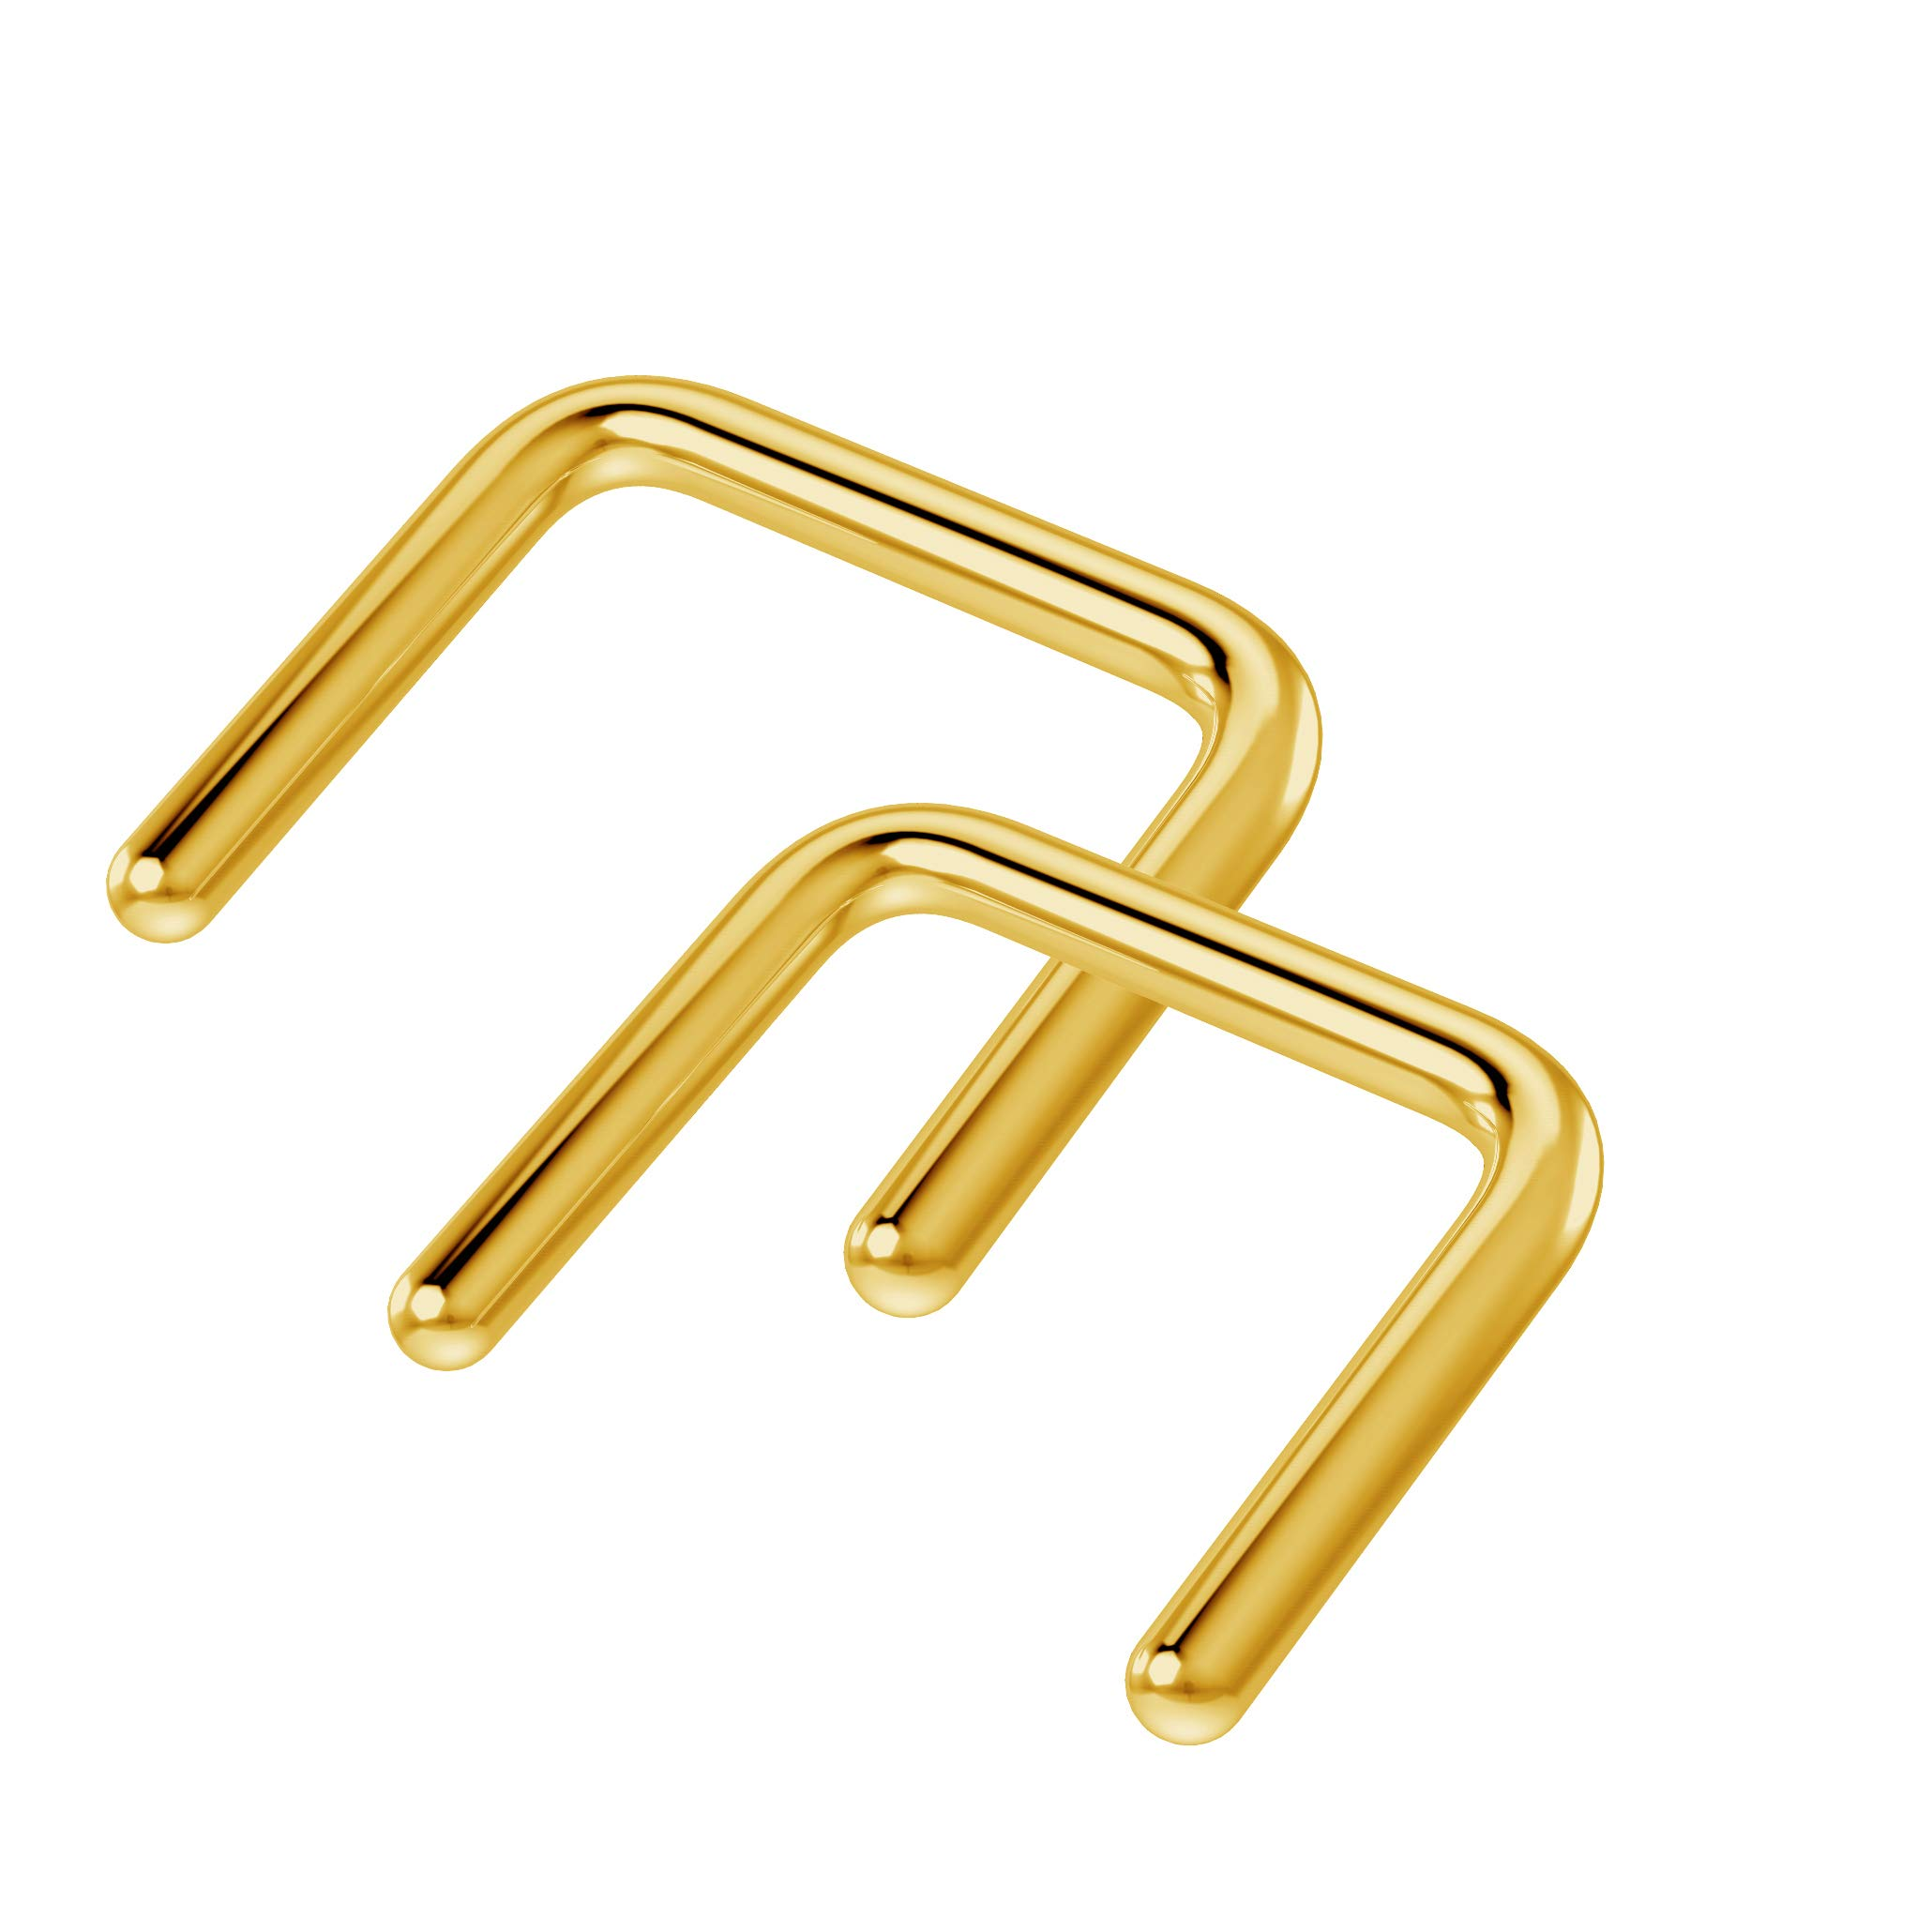 2pc Gold Anodized Septum Retainer 16g U-Shaped Piercing Ring 16 Gauge Staple Shape Jewelry 5/16 8mm